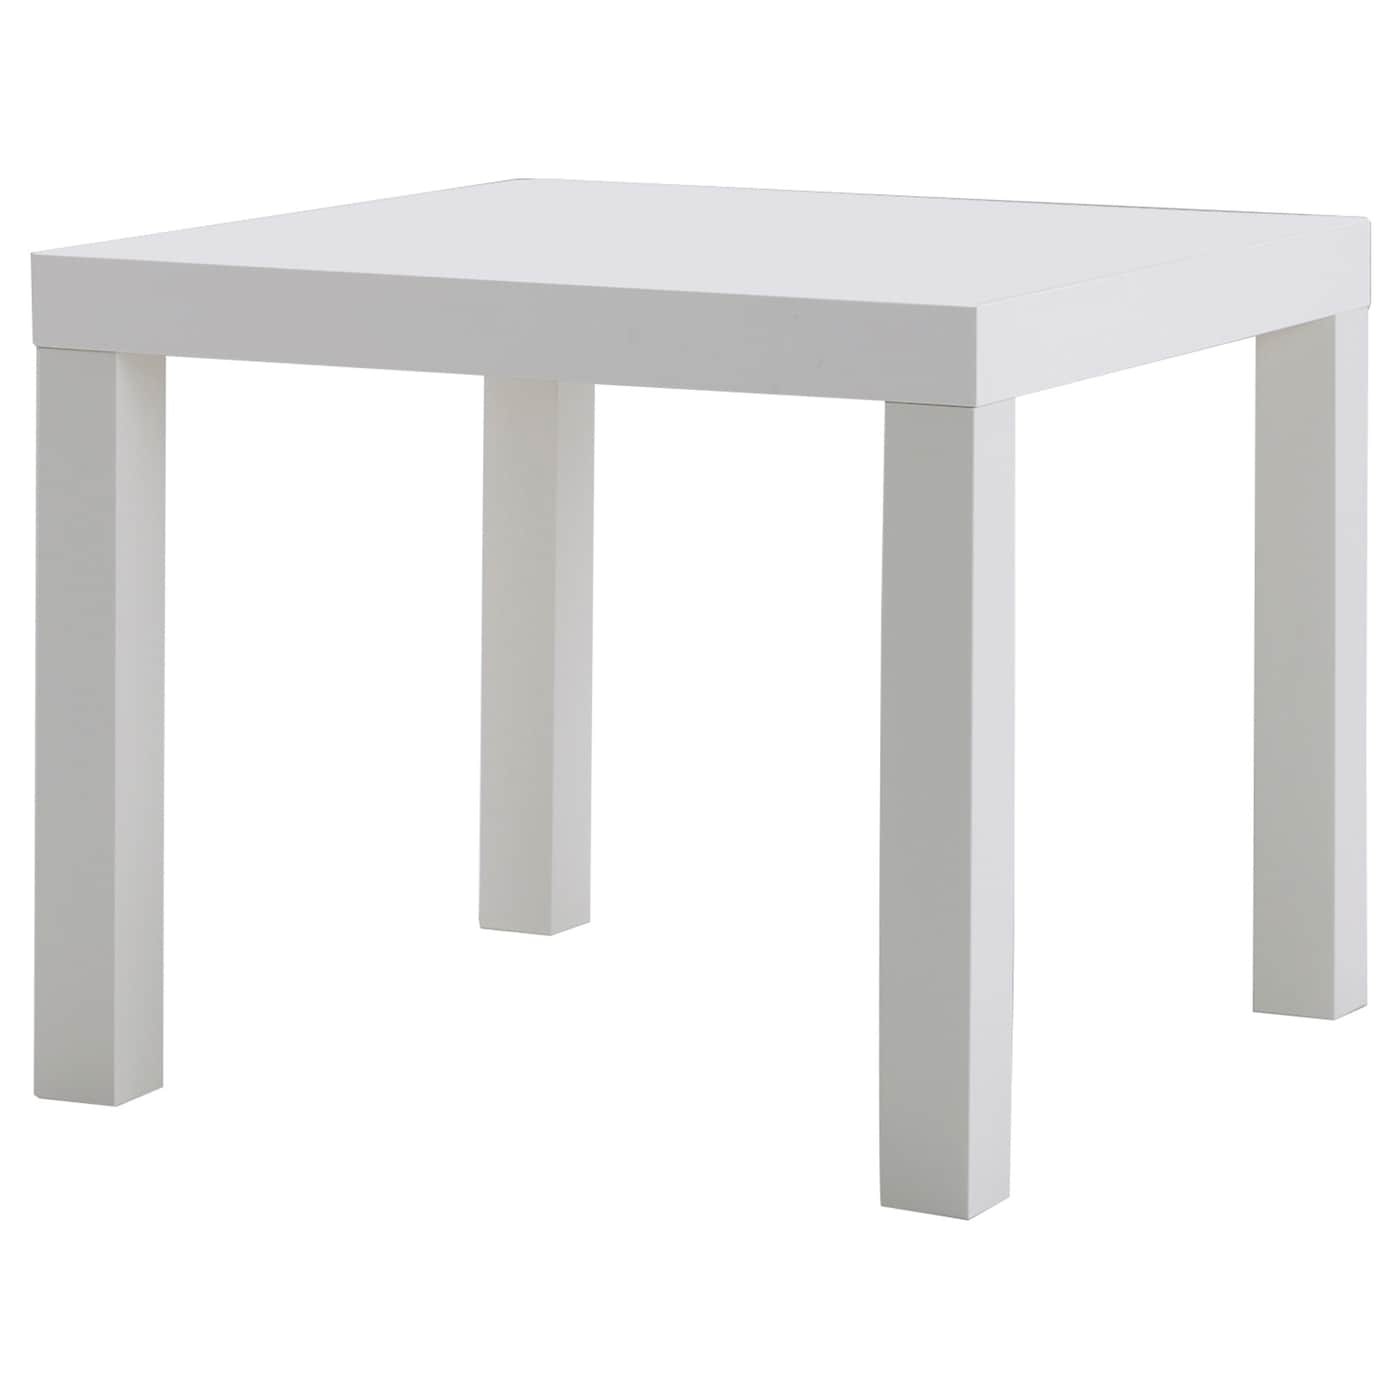 Lack side table white 55x55 cm ikea - Petite table cuisine ikea ...